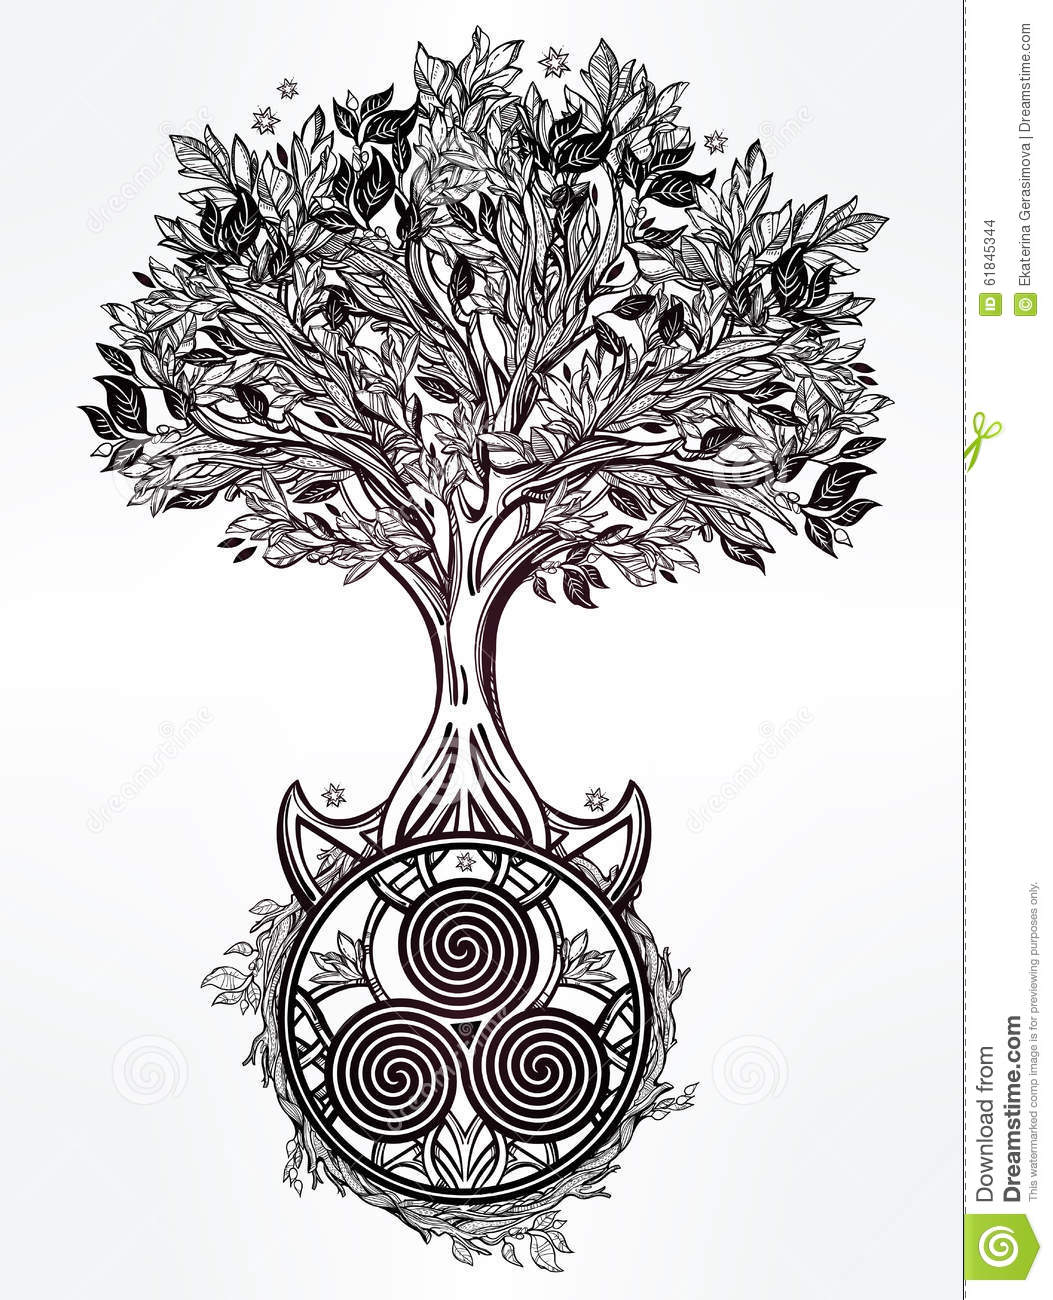 Arbre Celtique Dillustration De La Vie Illustration